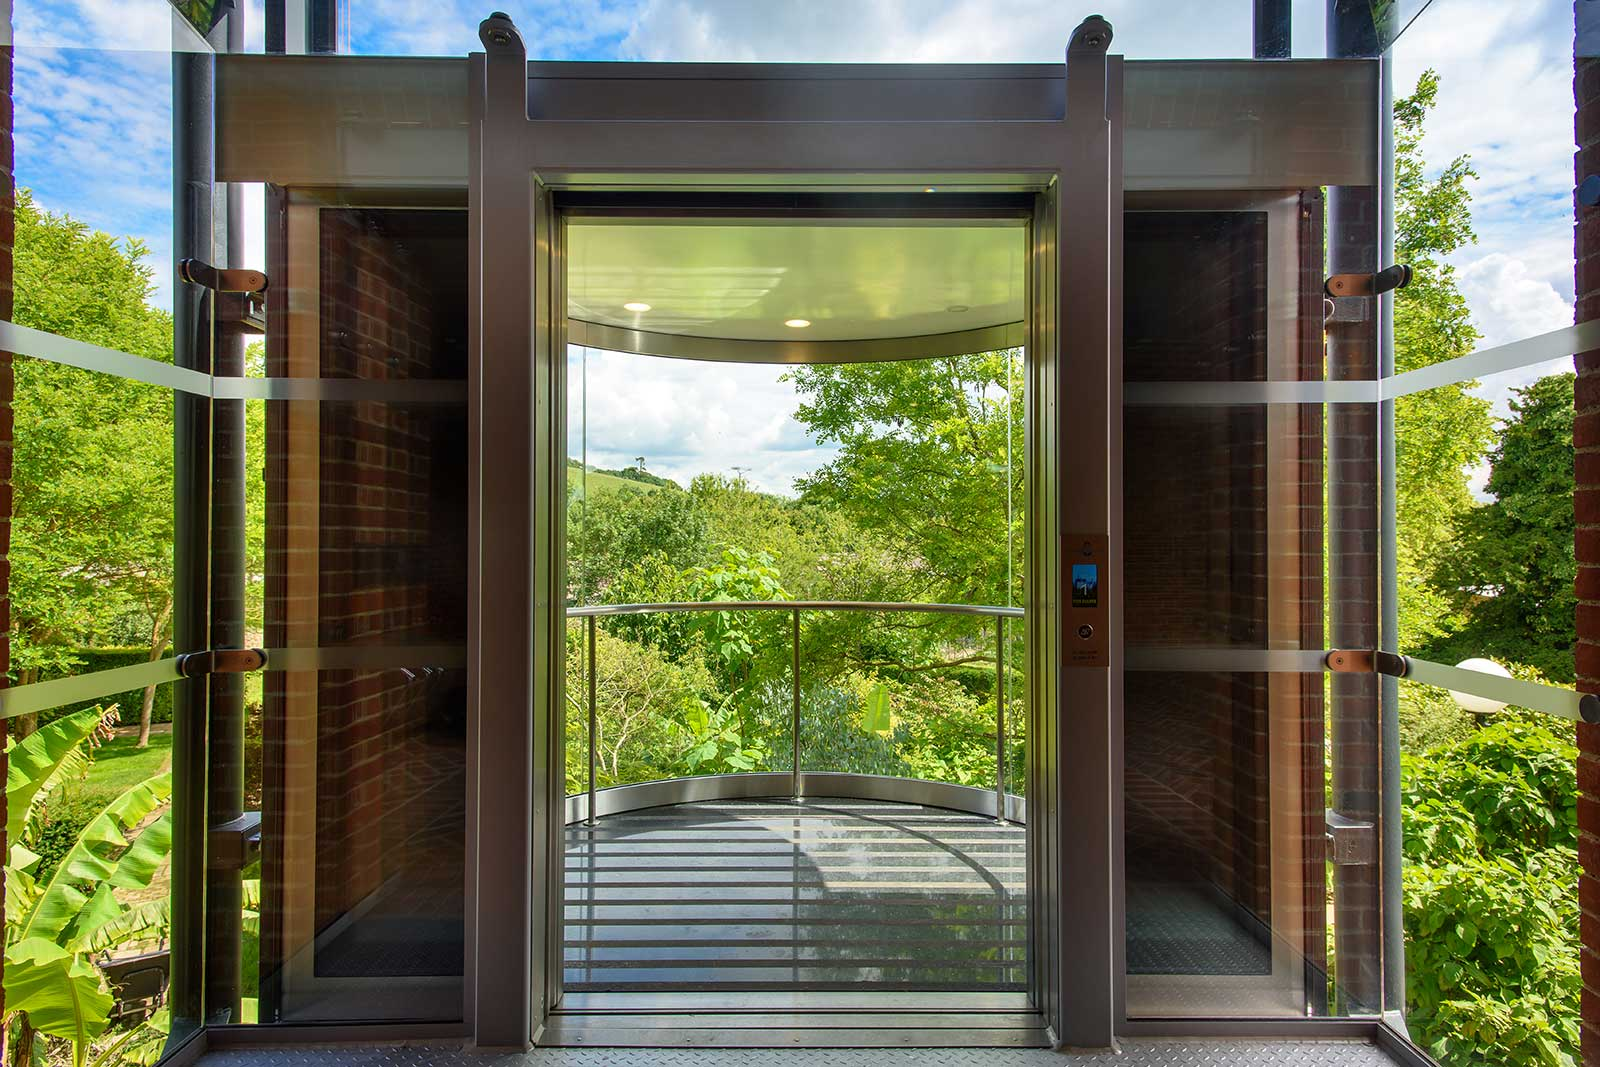 Structural Glass Wall to Elevator Entrance, Glyndebourne